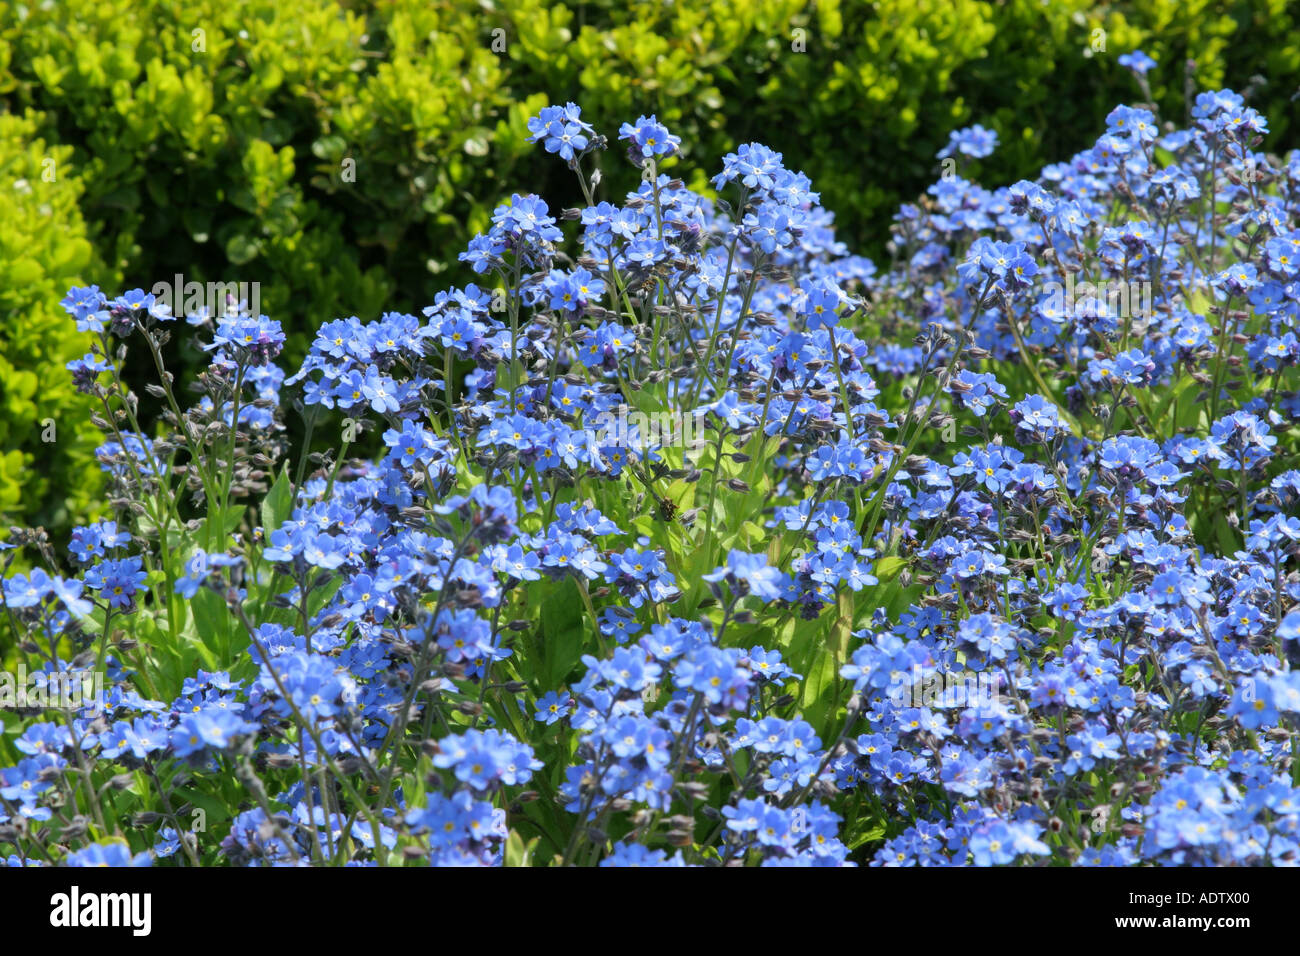 Blue flowers of garden plant forget me not next to dwarf box hedge blue flowers of garden plant forget me not next to dwarf box hedge botanical name myosotis sylvatica izmirmasajfo Choice Image